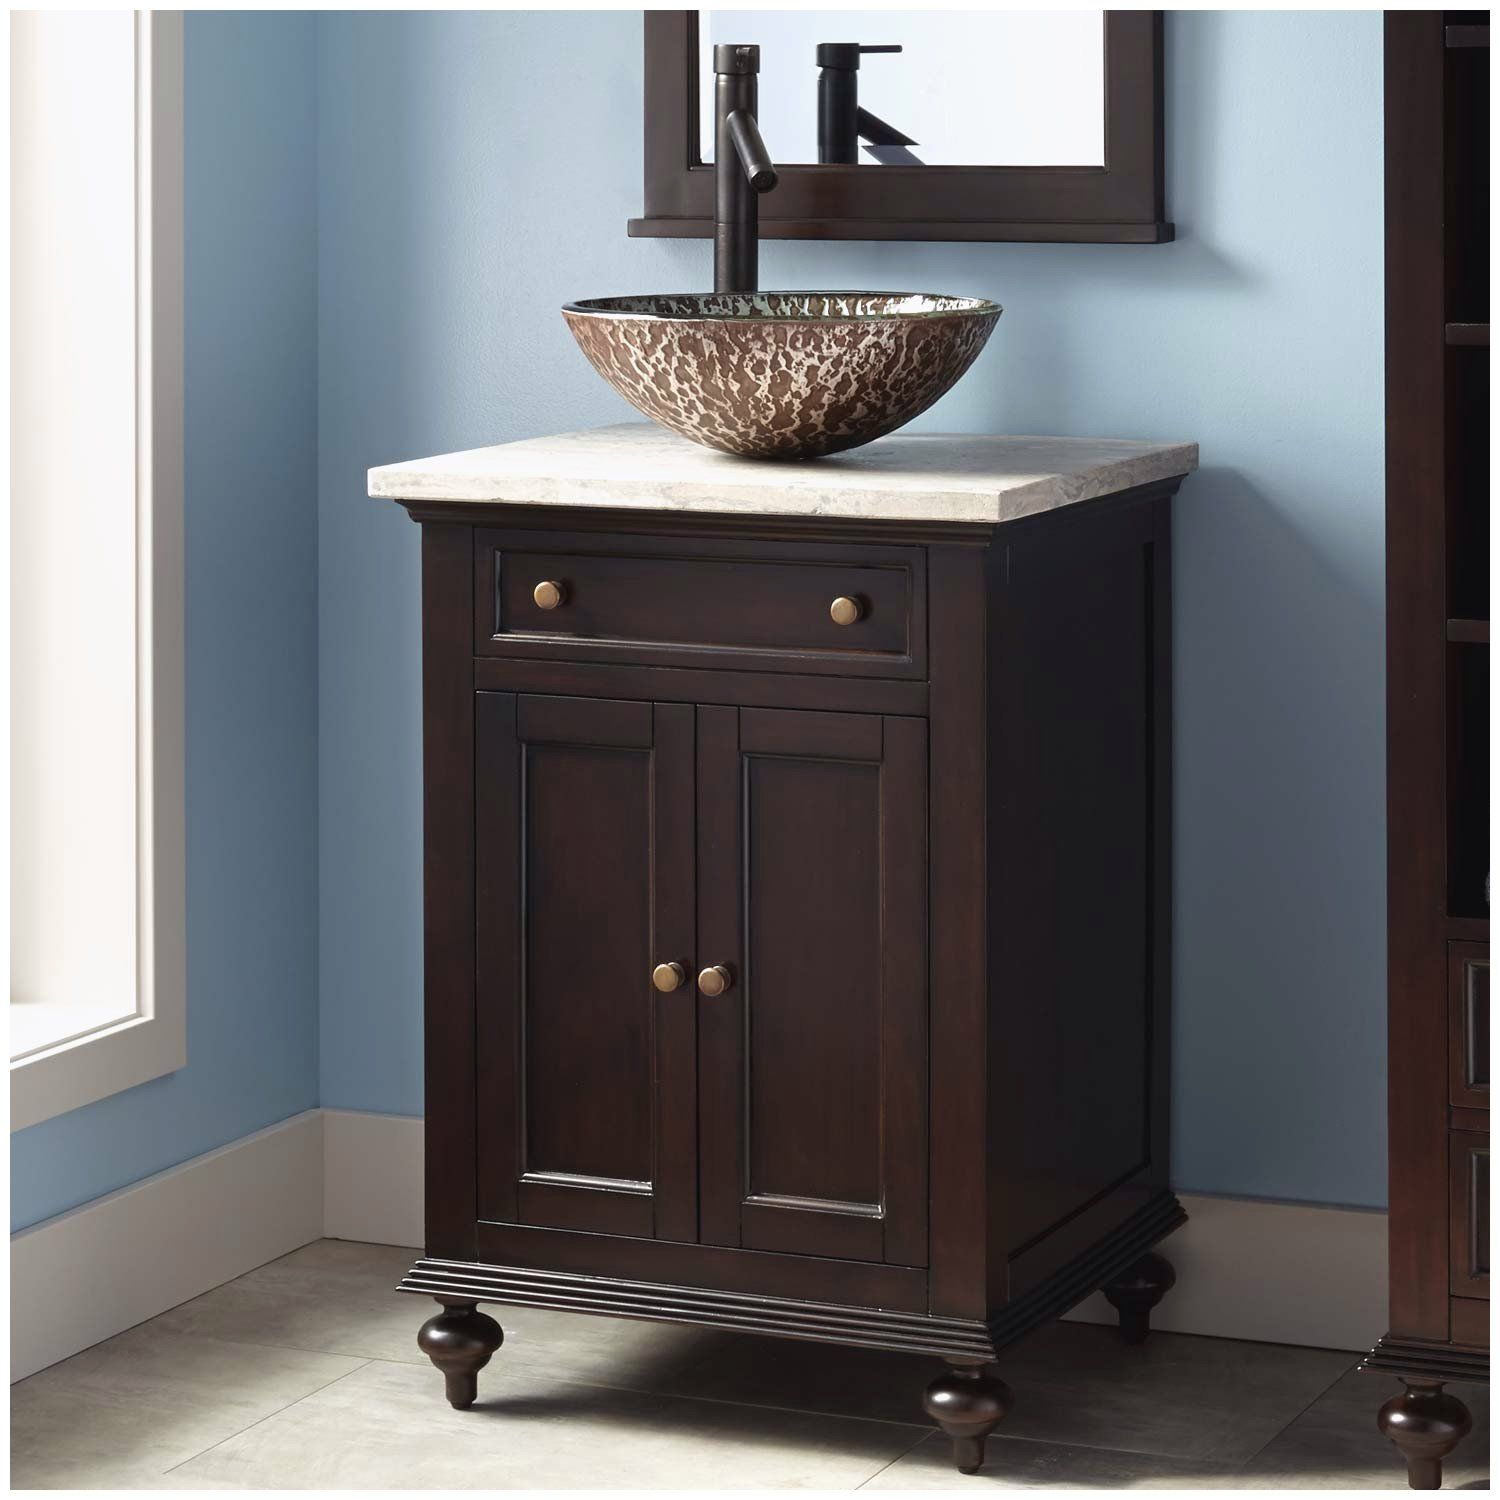 Lowes Clearance Bathroom Vanities Of Bathroom Vanities In 2020 24 Bathroom Vanity Vessel Sink Vanity Black Vanity Bathroom